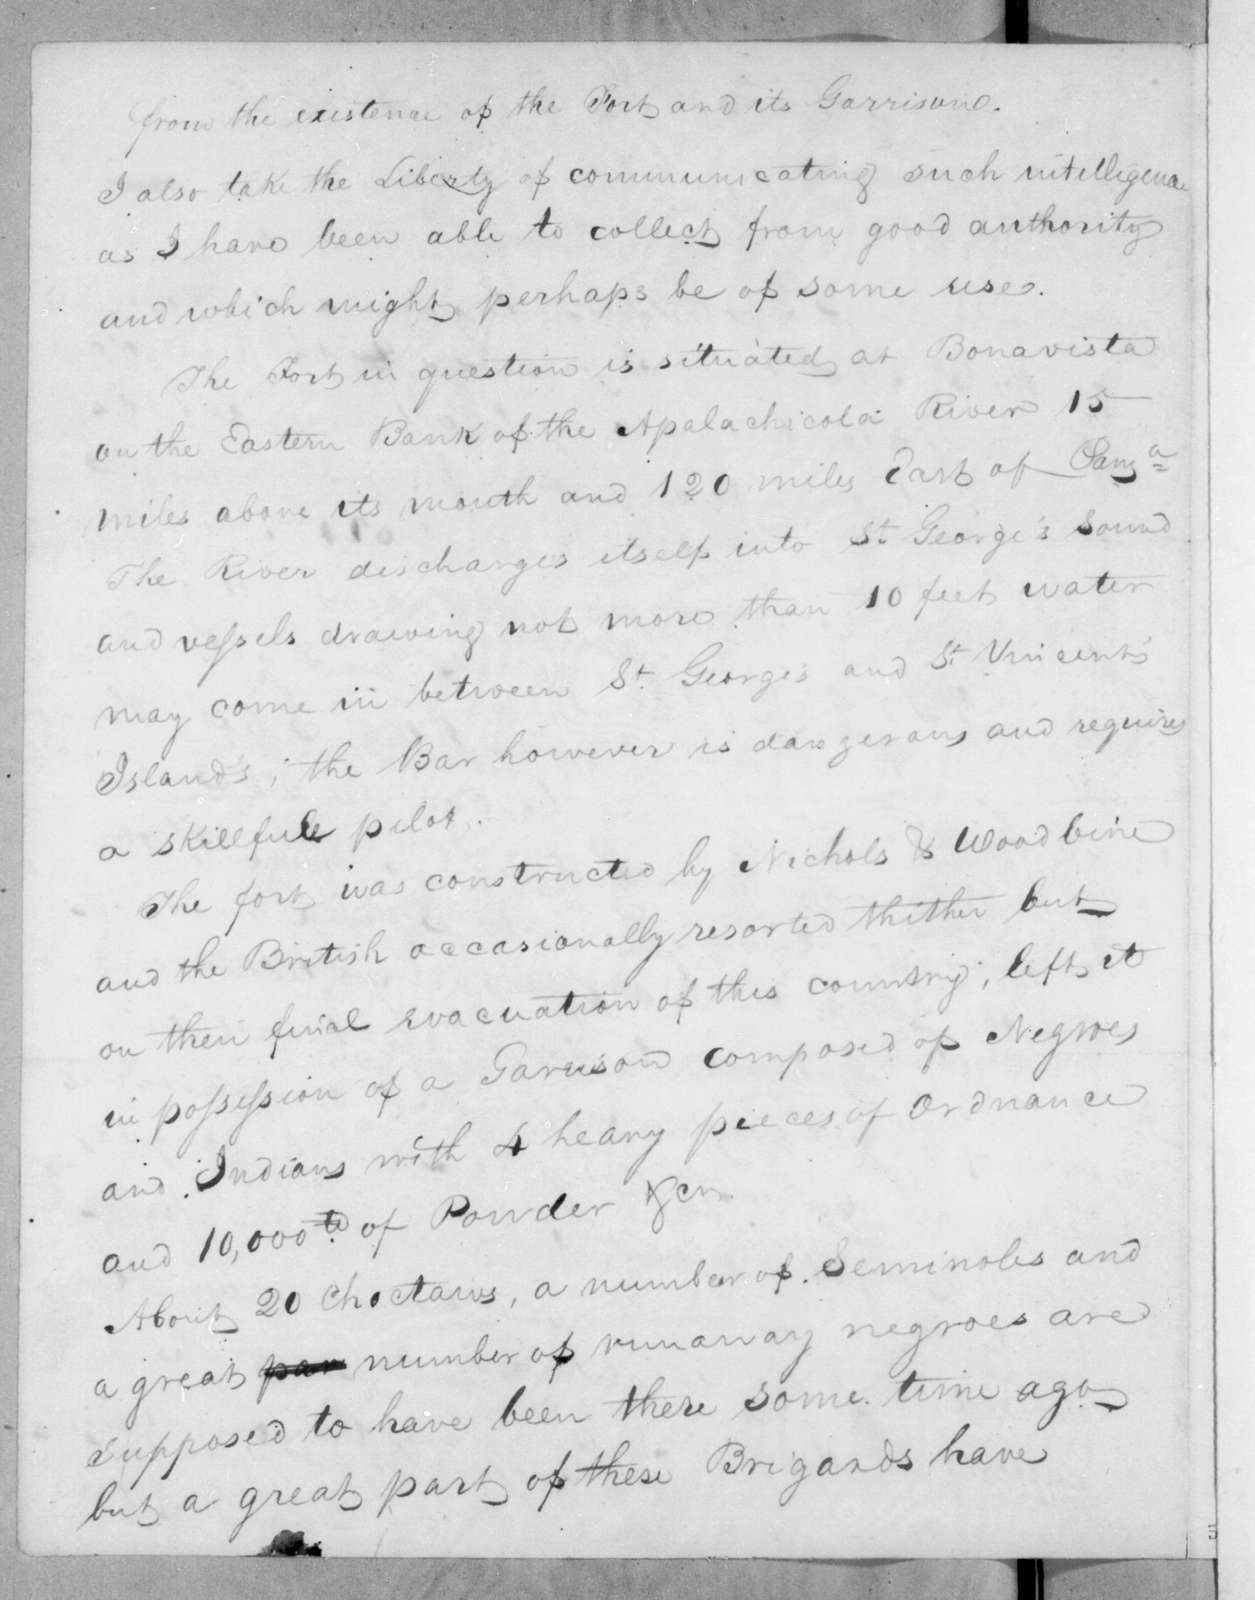 Ferdinand Louis Amelung to Andrew Jackson, June 4, 1816